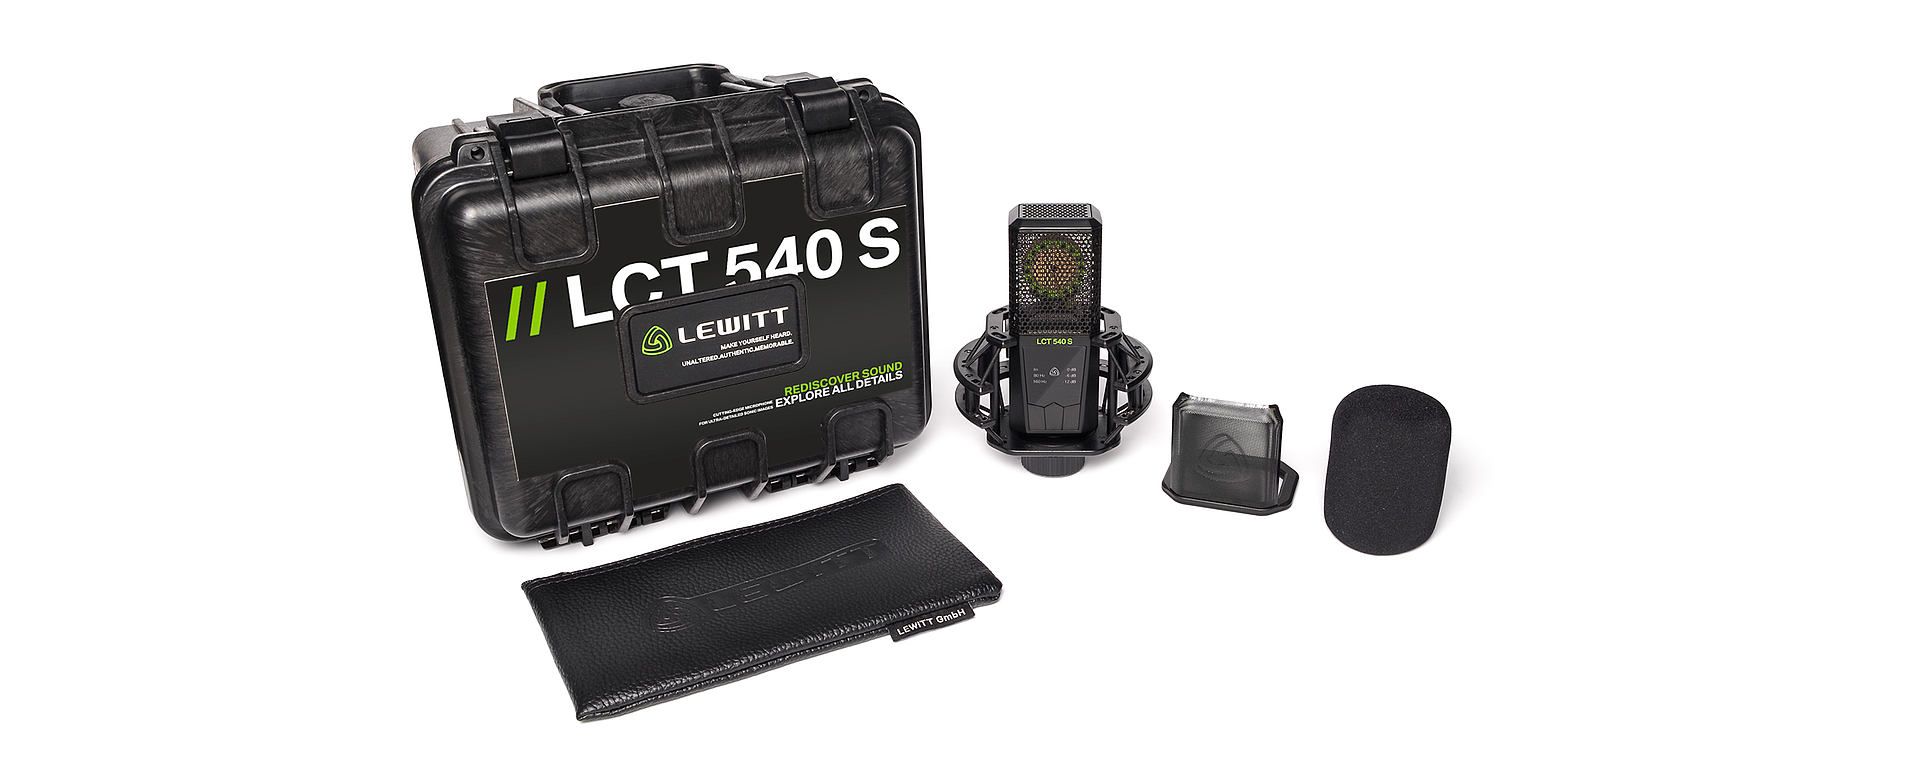 LCT 540 S Box content